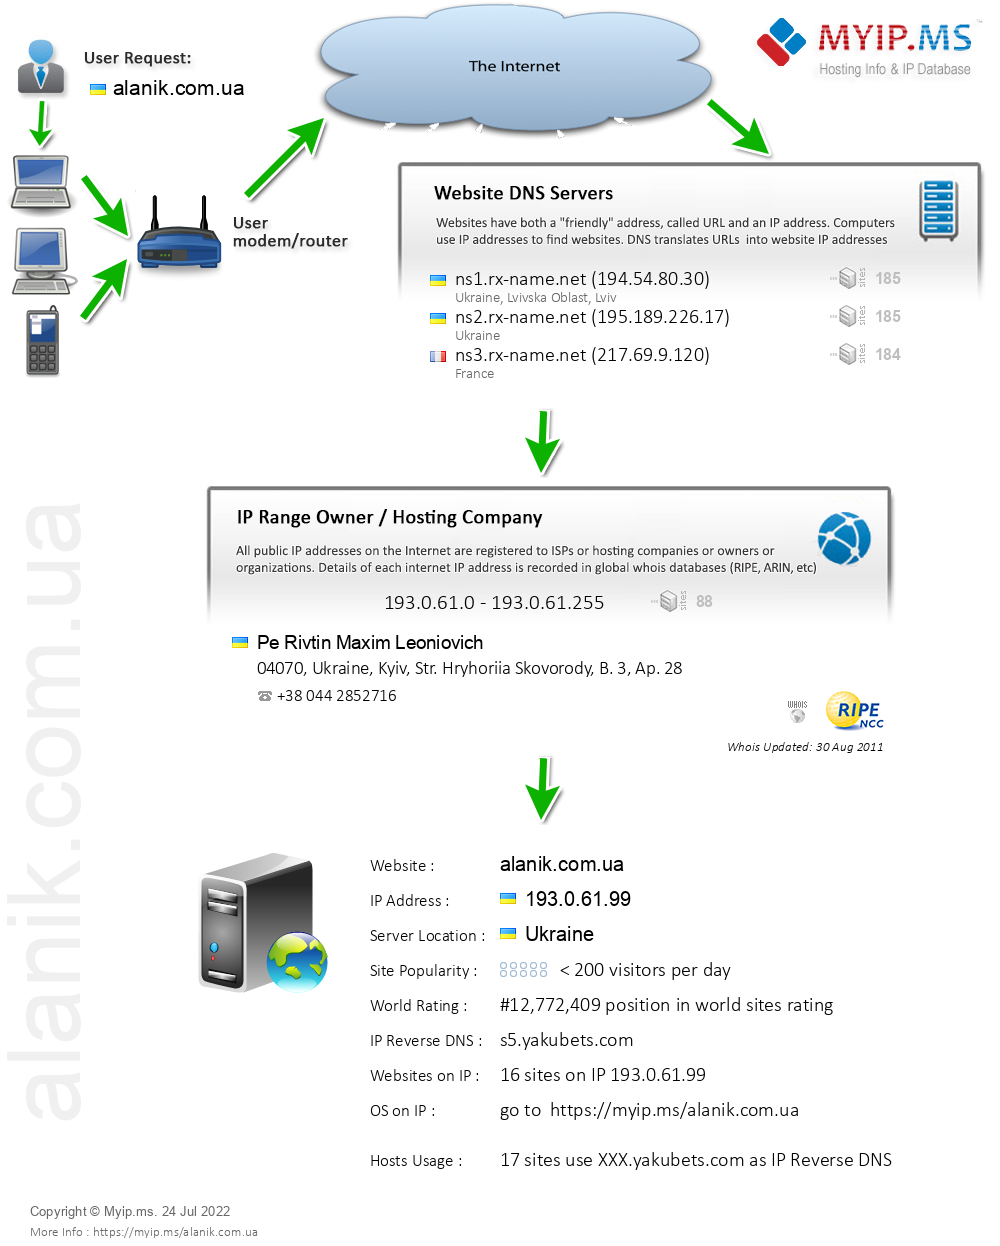 Alanik.com.ua - Website Hosting Visual IP Diagram